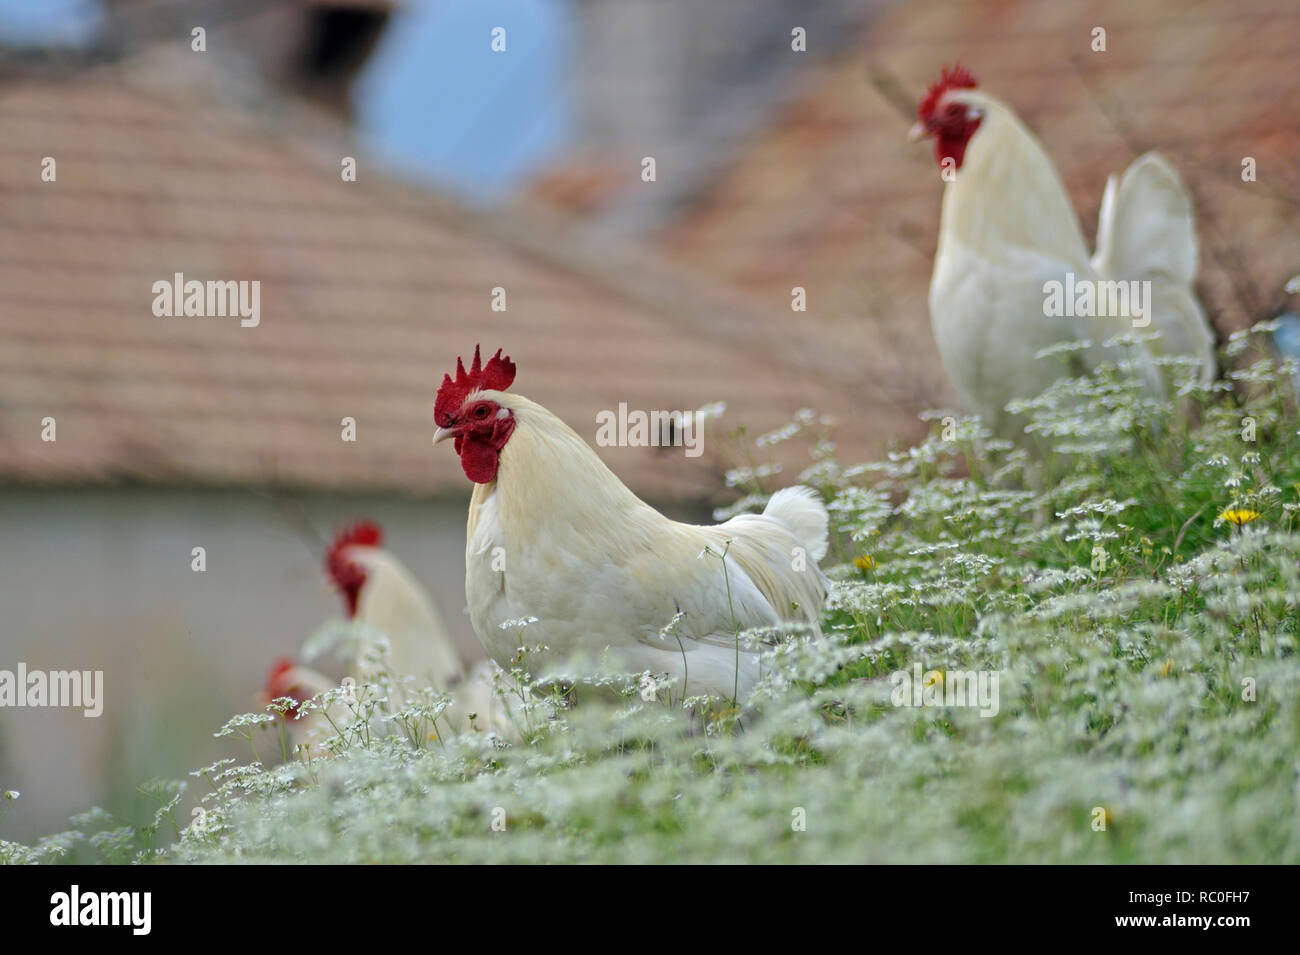 Haushuhn, Gallus gallus f.domesticus, Hühner in freier Natur | domestic fowl, Gallus gallus f. domesticus, poultry in natural surroundings - Stock Image